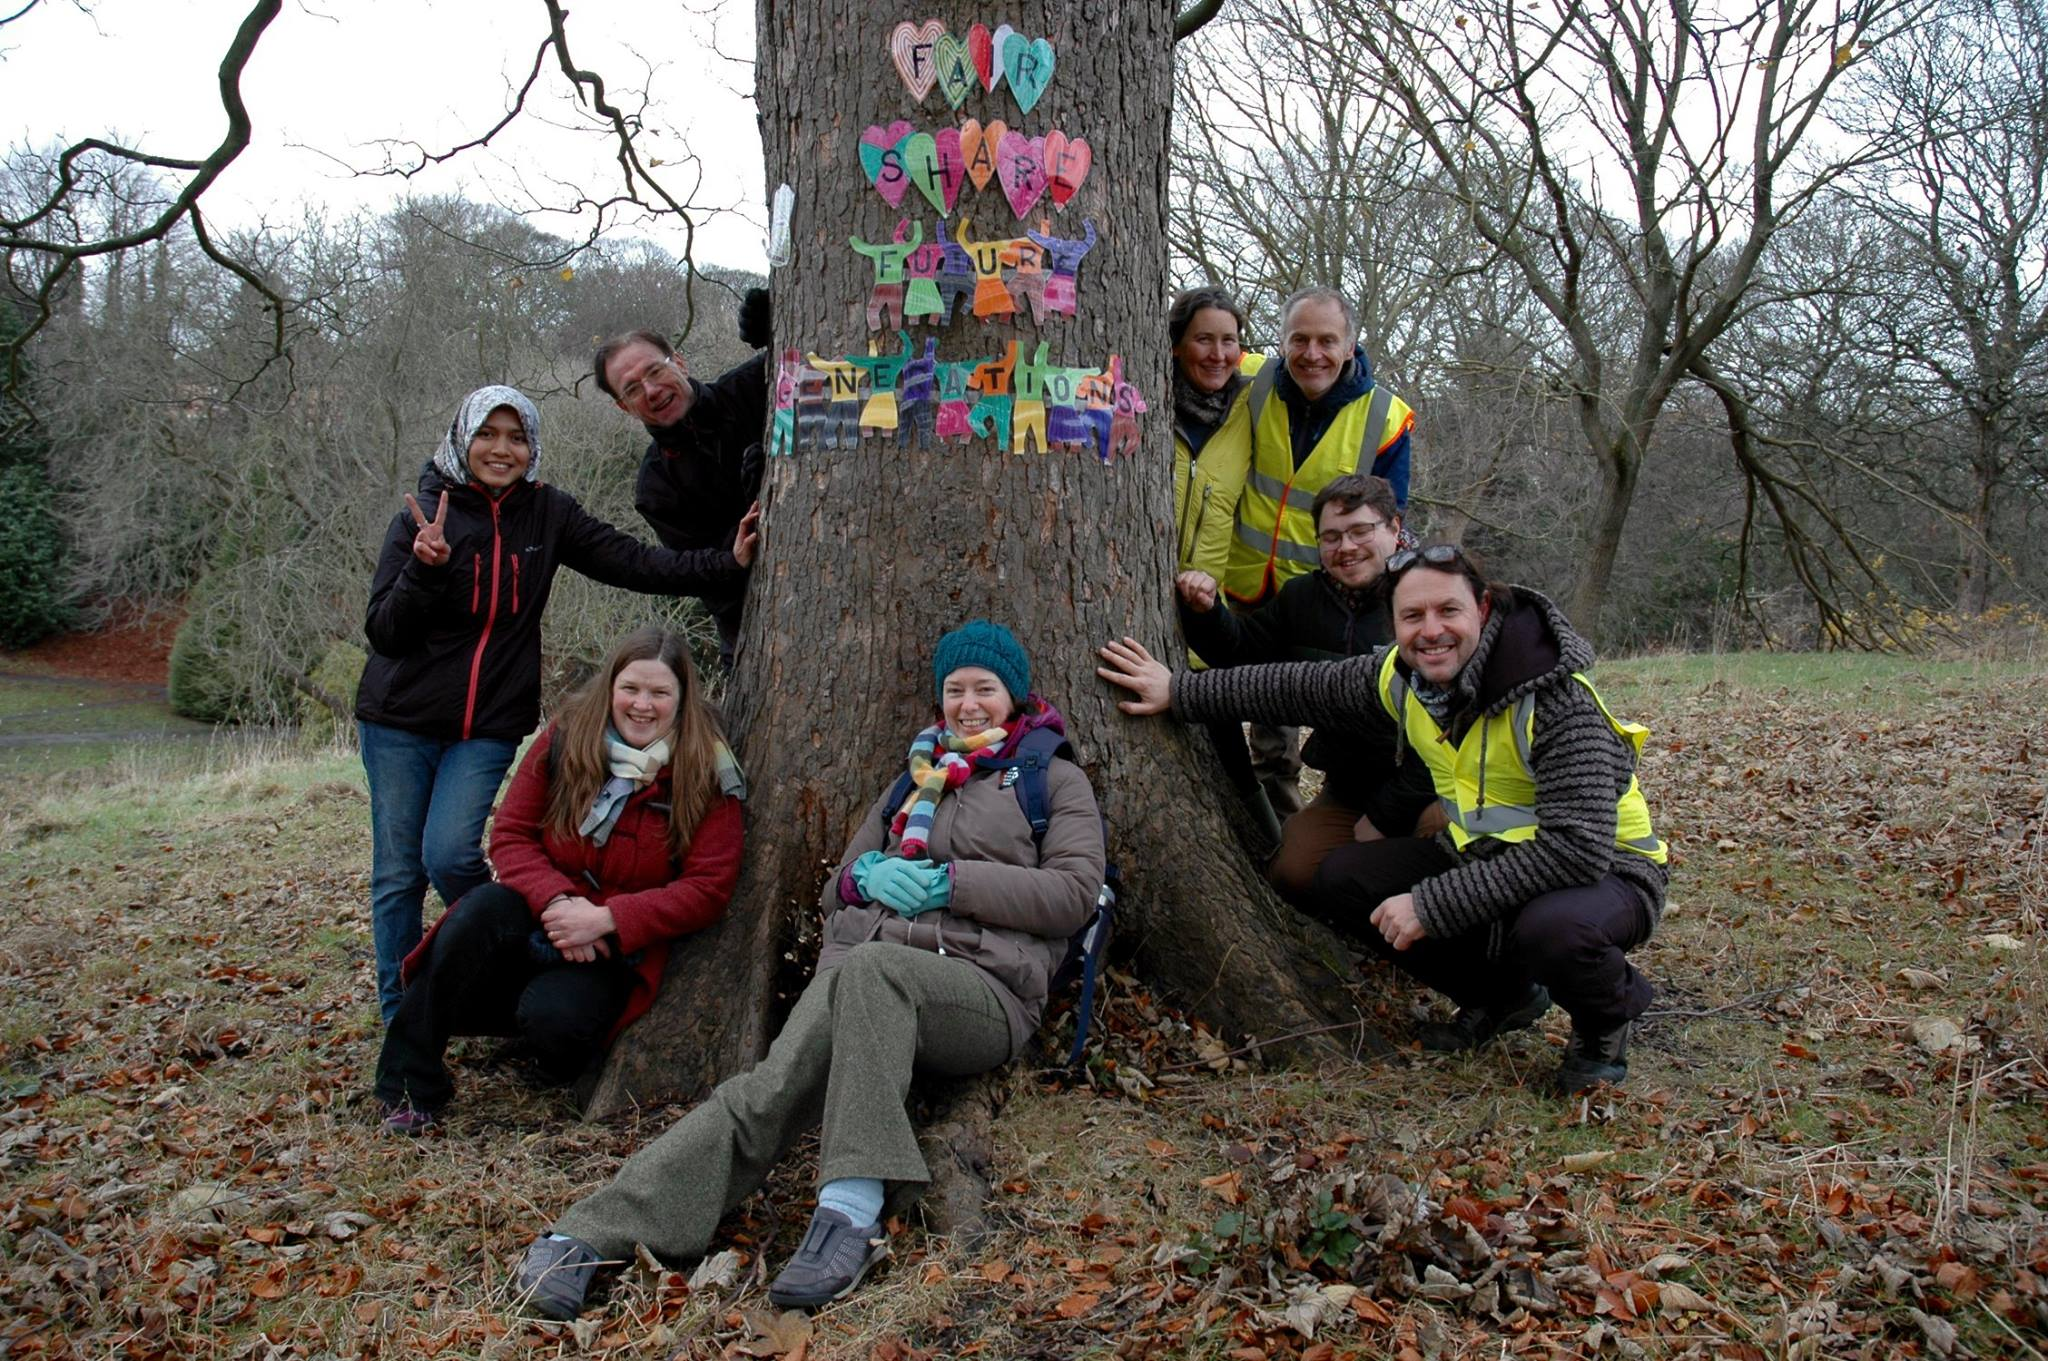 People sitting and leaning against a tree decorated with bunting for National Tree Week